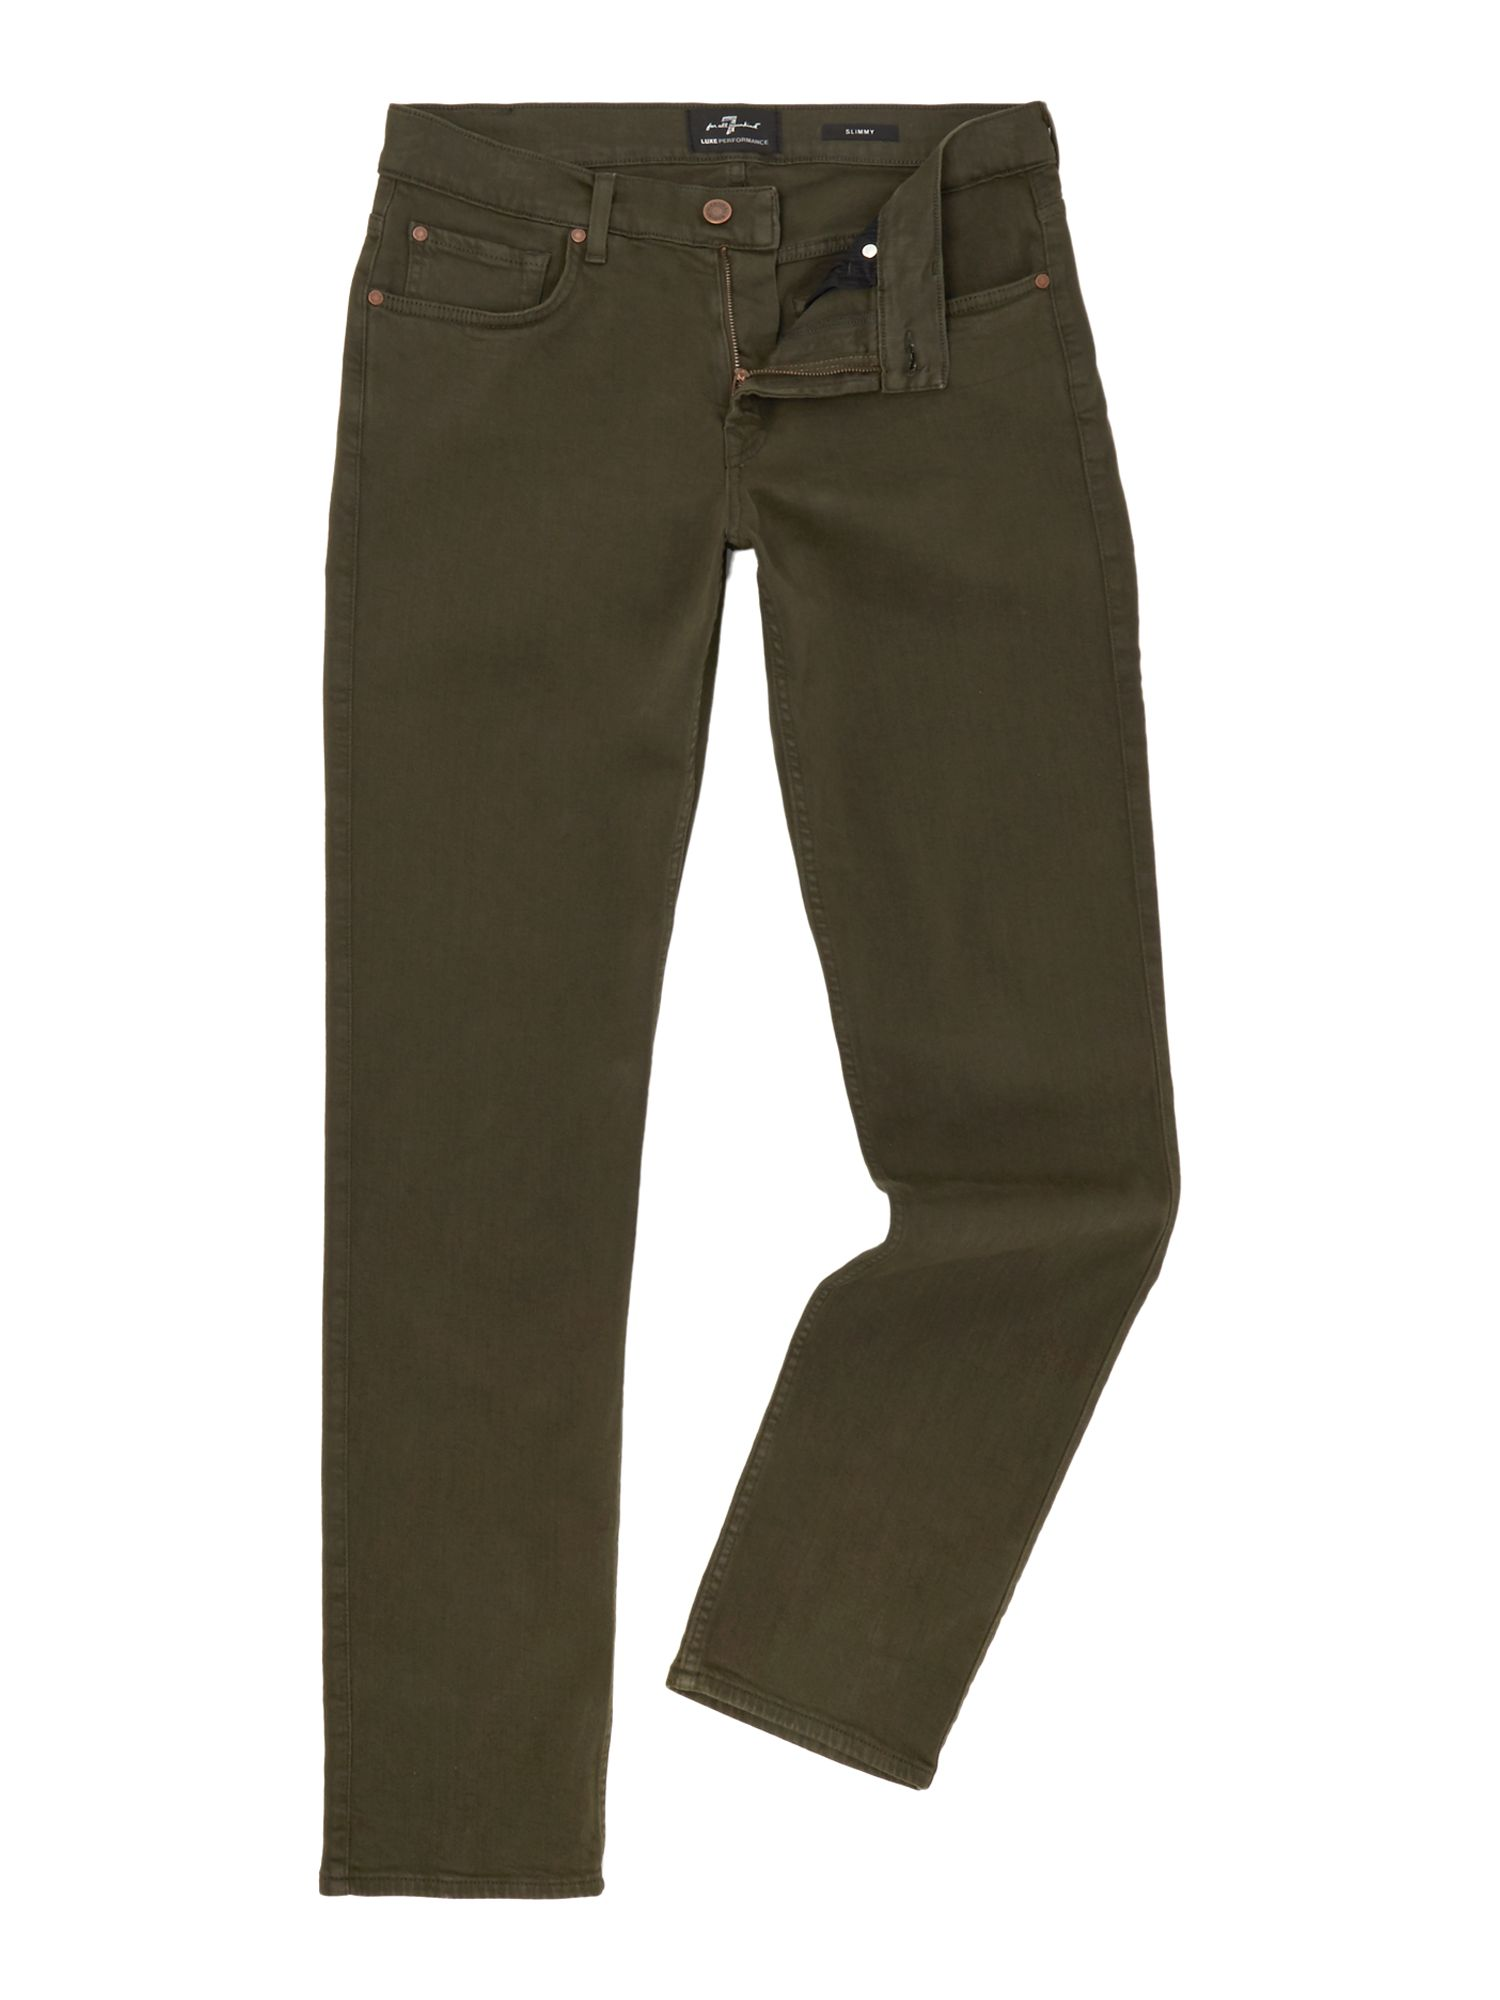 Mens 7 For All Mankind Slimmy Slim Fit Luxe Performance Colour Jeans Khaki